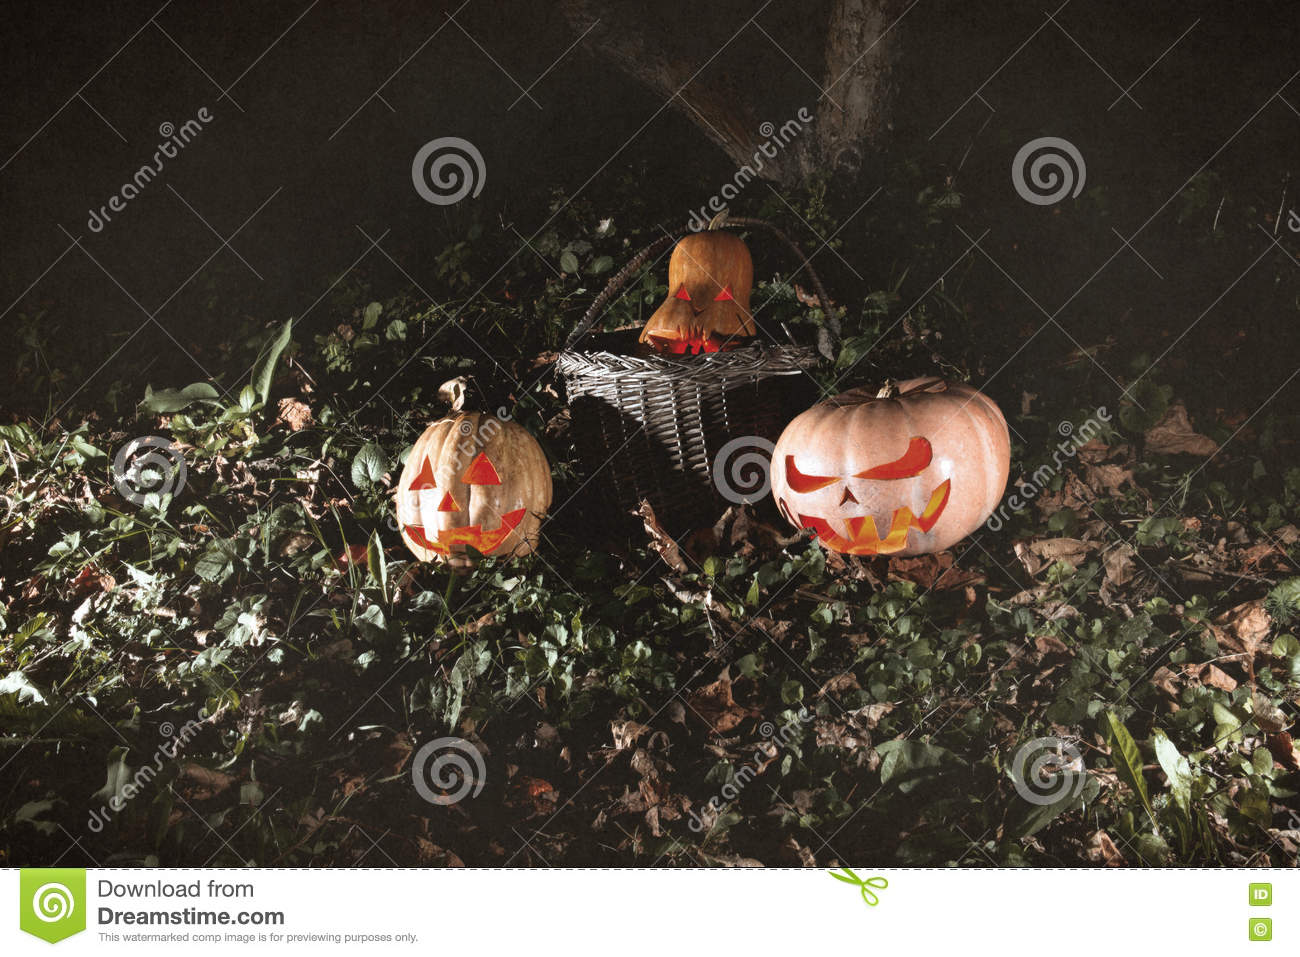 Halloween three pumpkins in leaves and grass in the dark, scary